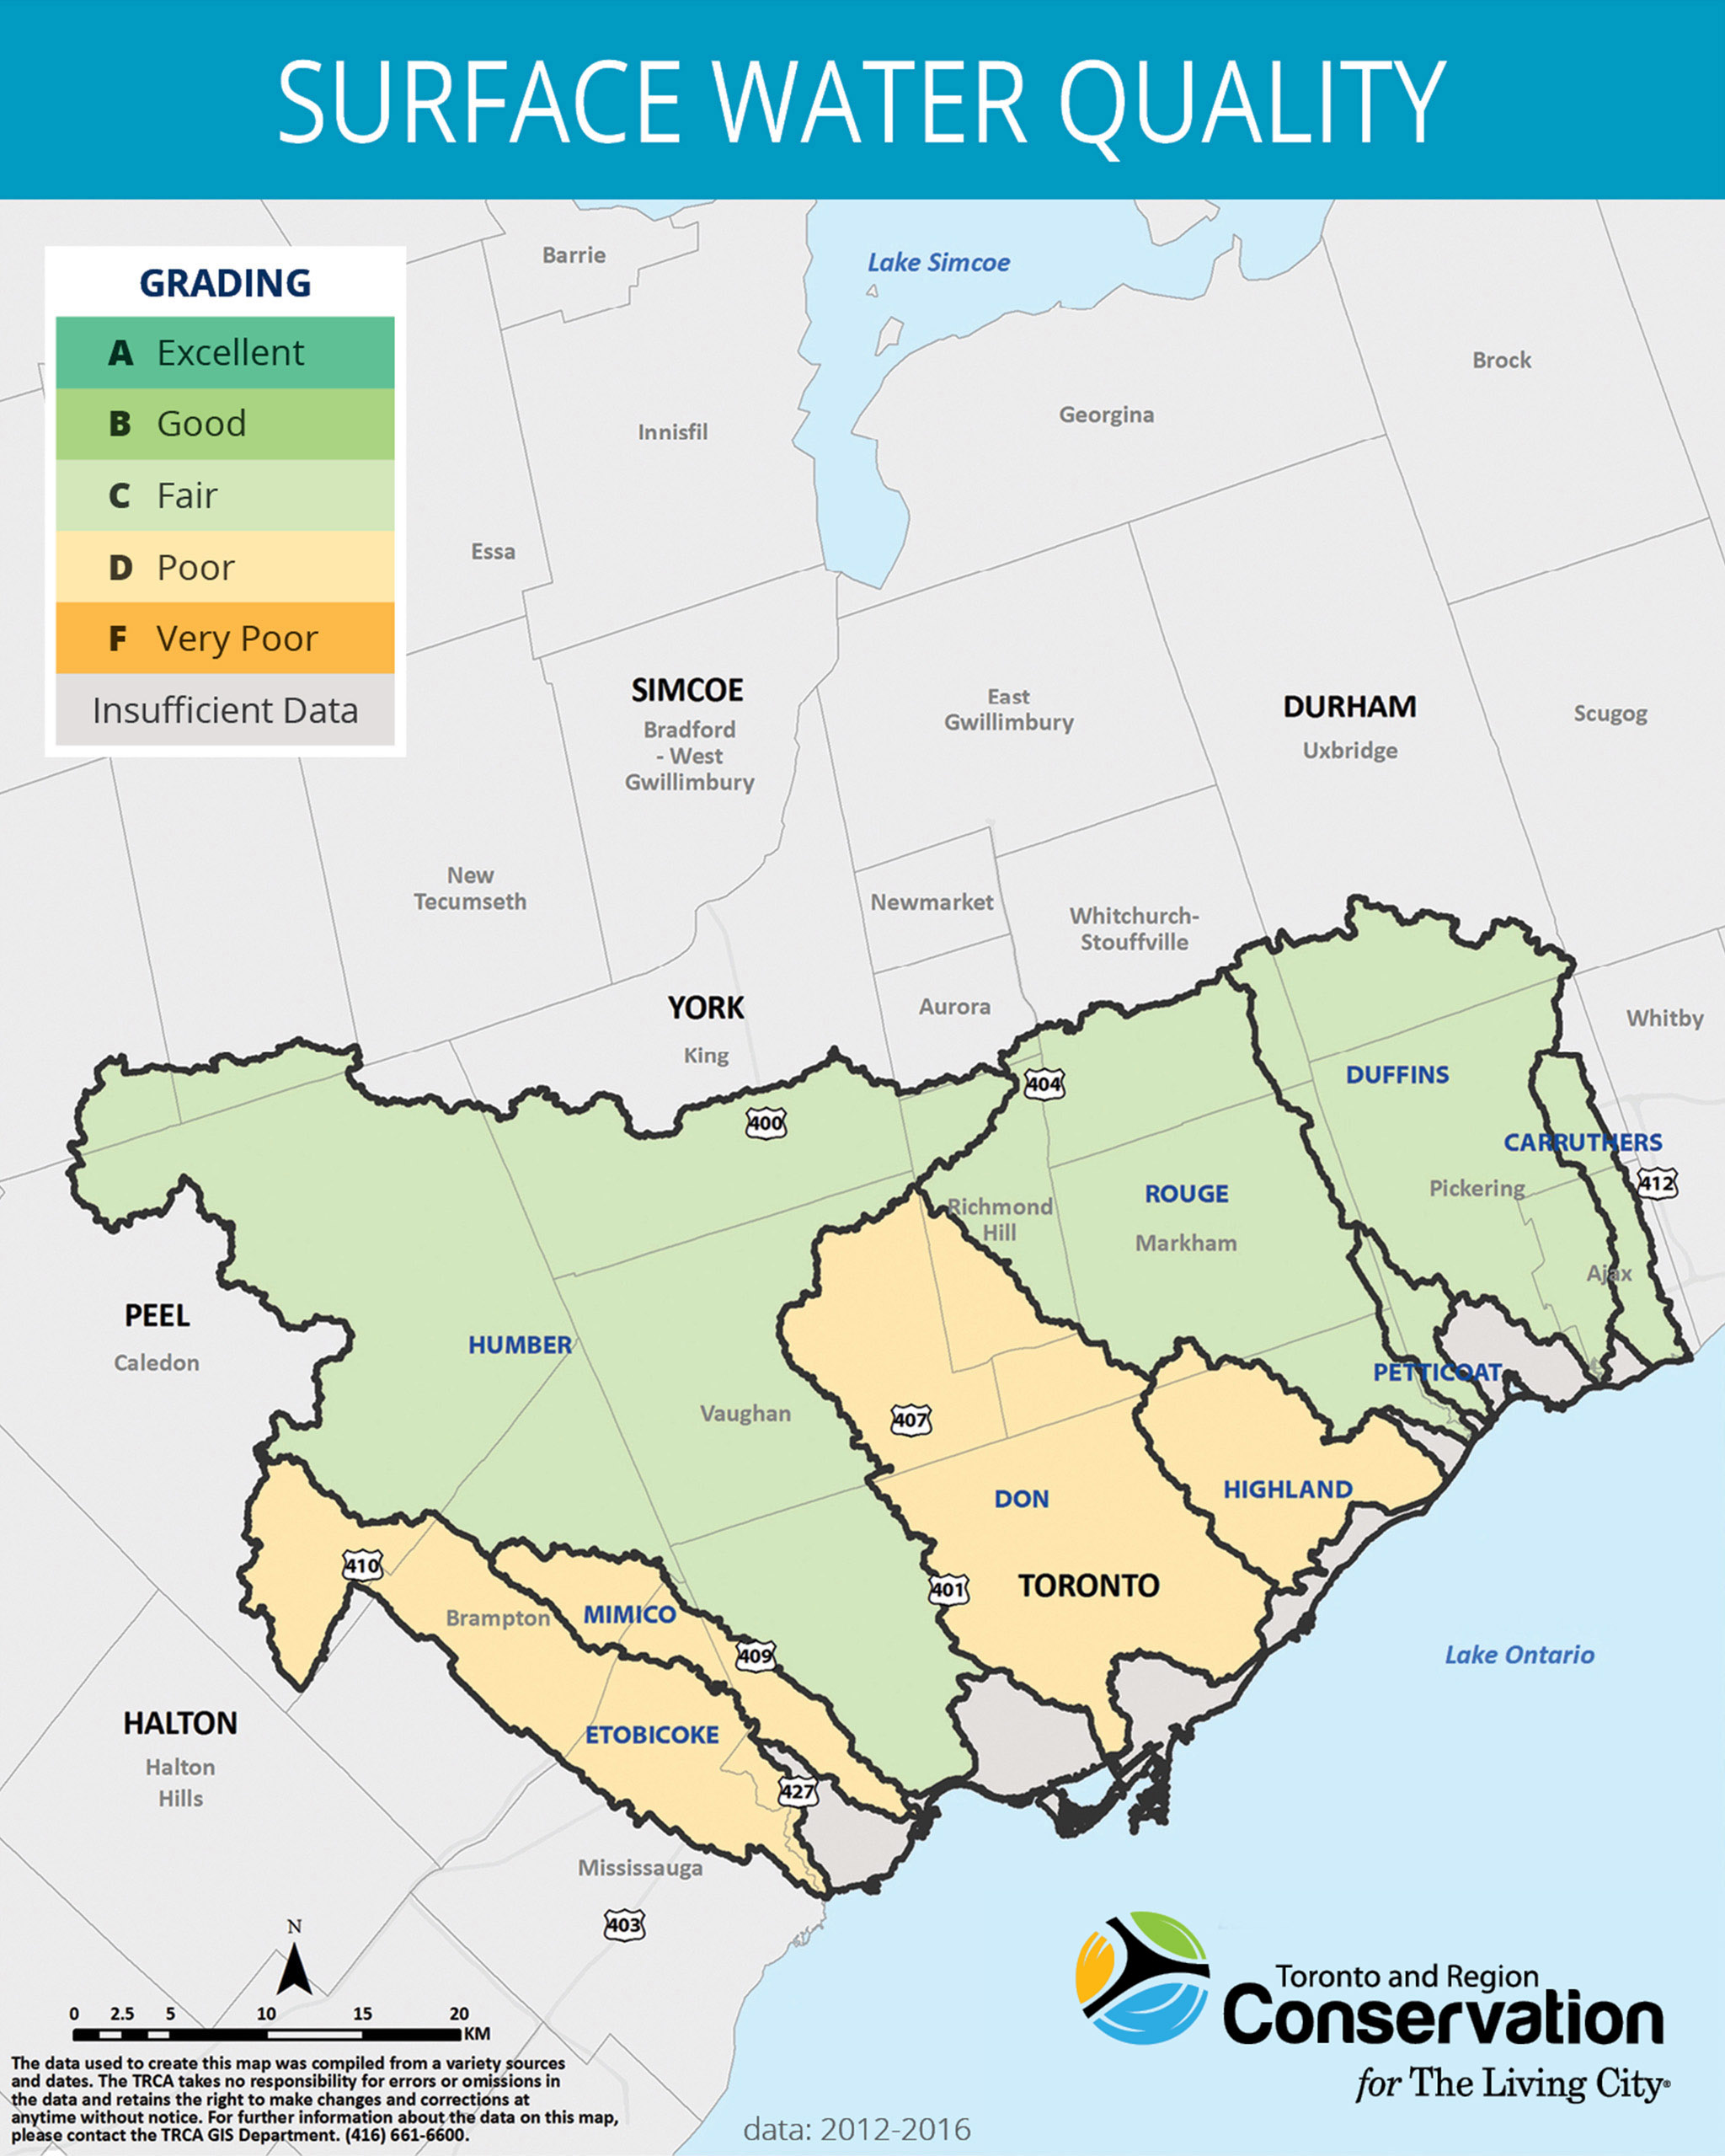 map of surface water quality in TRCA jurisdiction